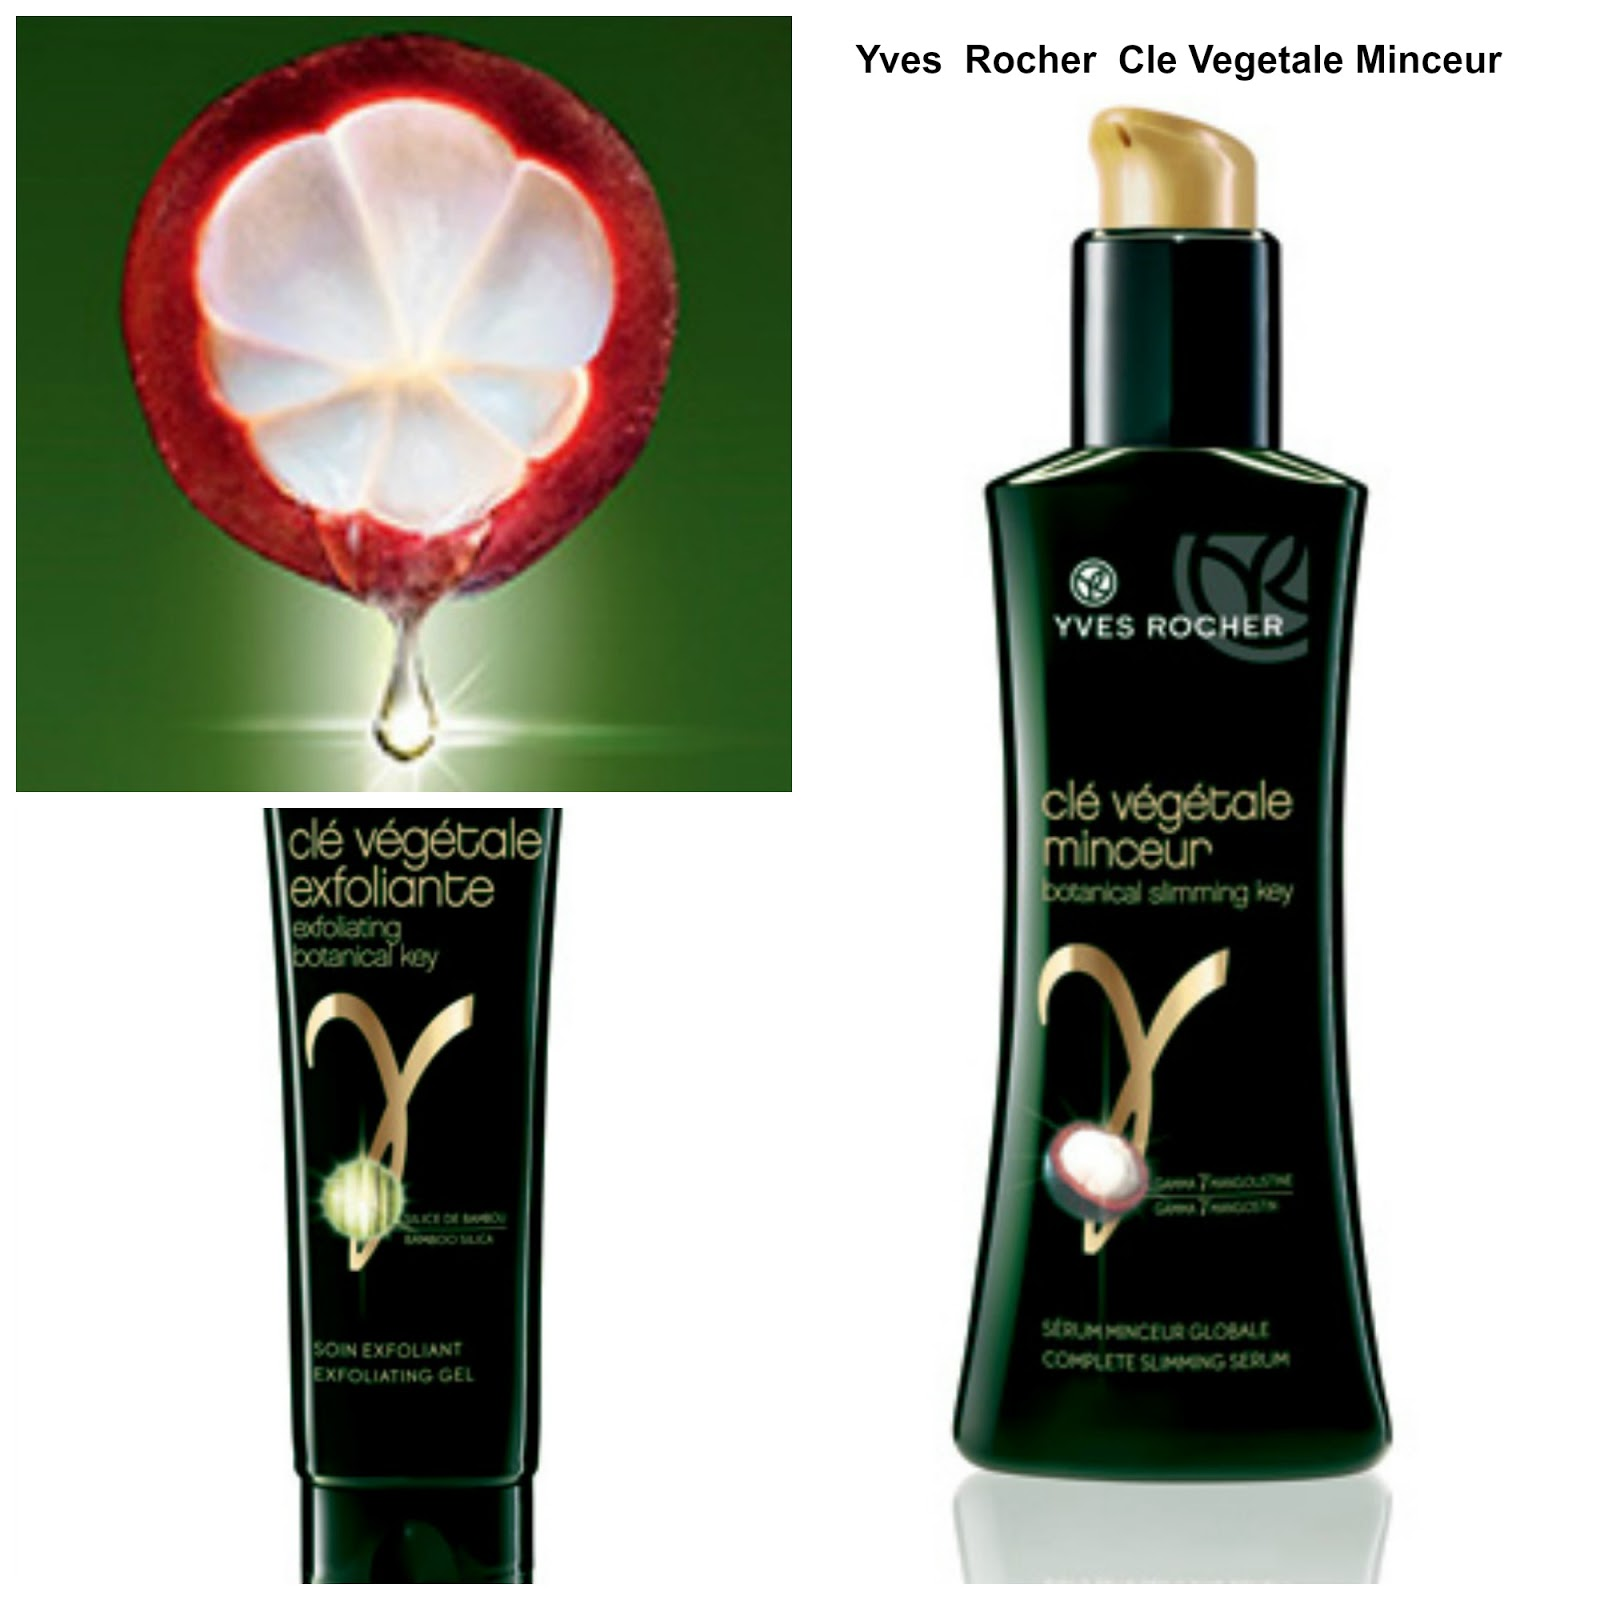 Get ready for the summer with Yves Rocher